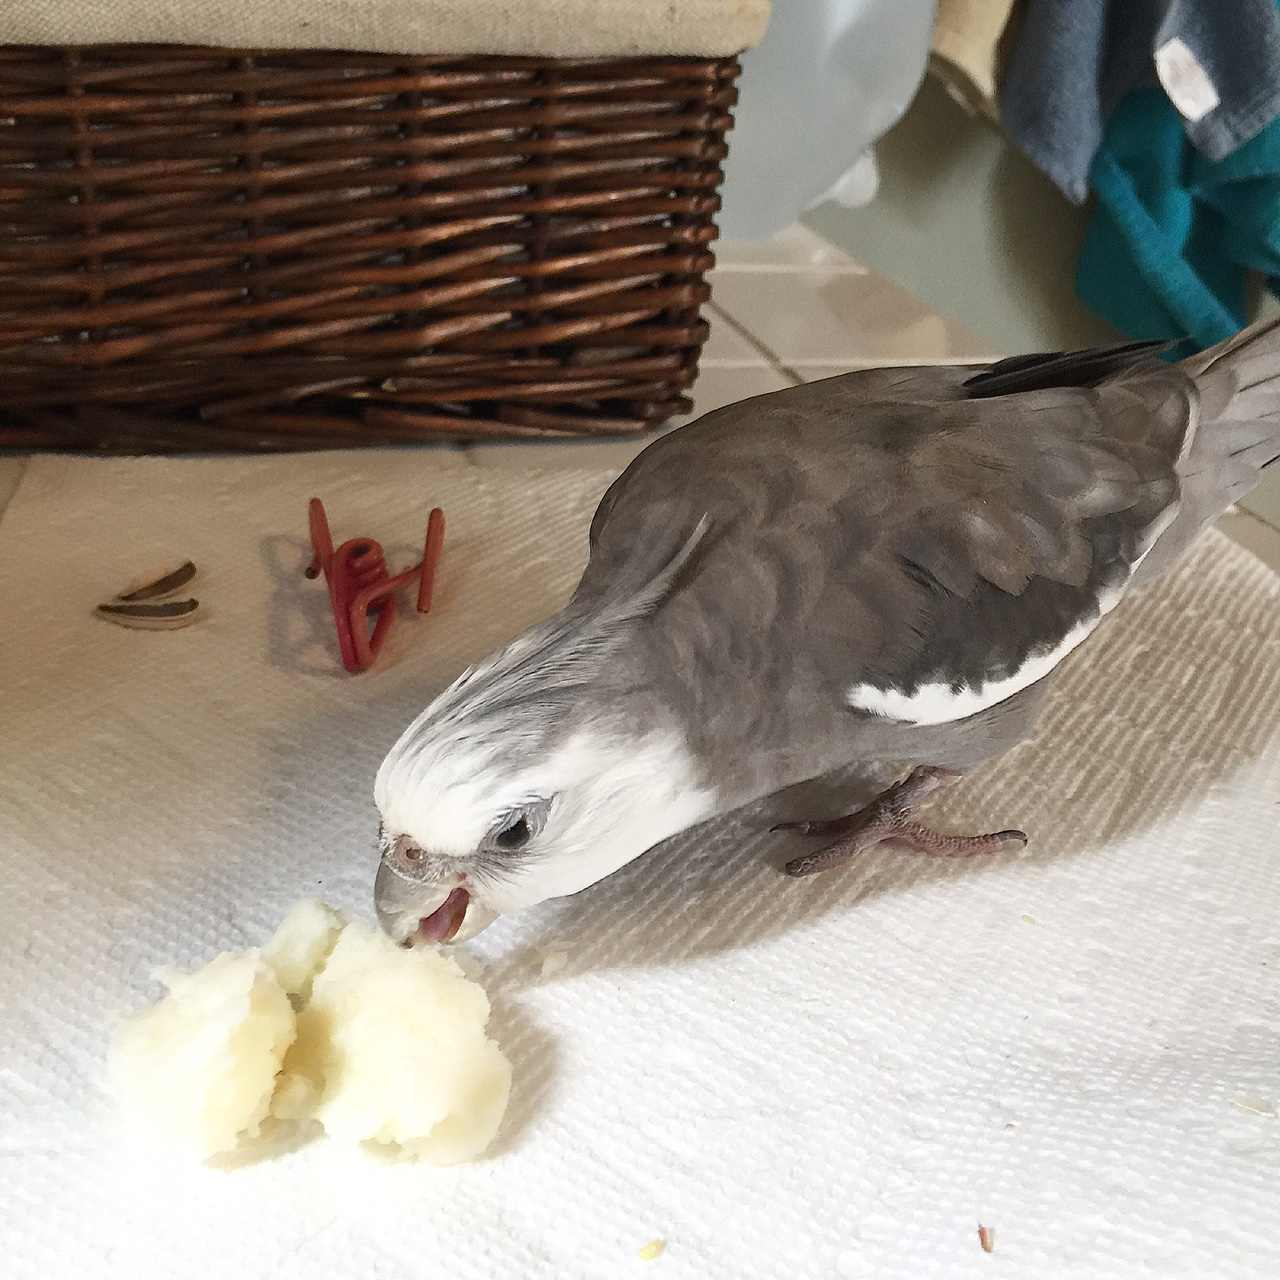 A certainly feathery diner digs in to a delicious portion of breakfast mashed potatoes.